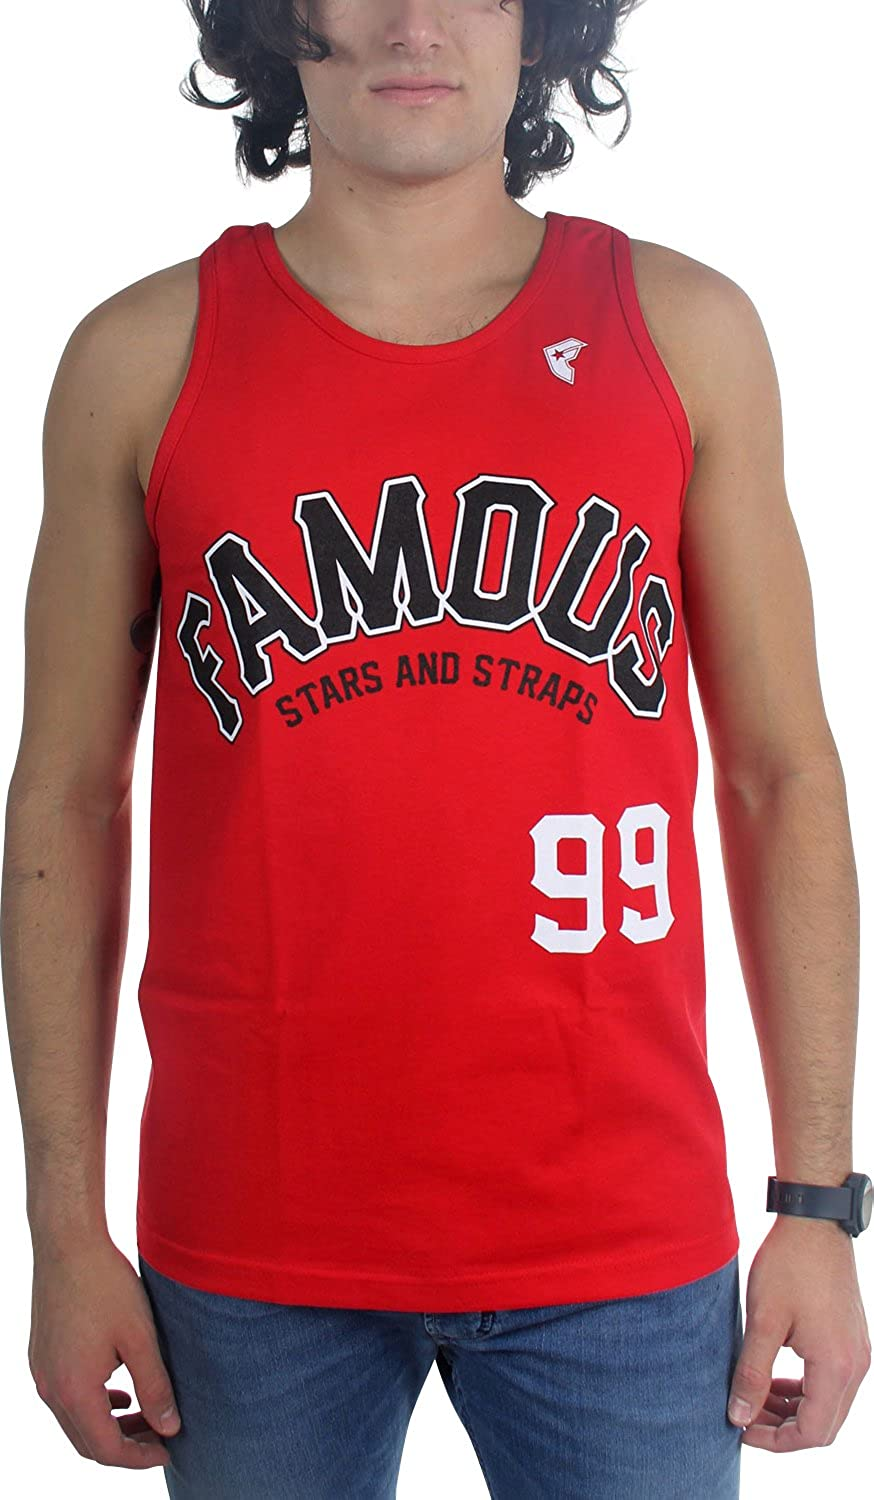 Famous Stars and Straps - Mens Gameday Tank Top